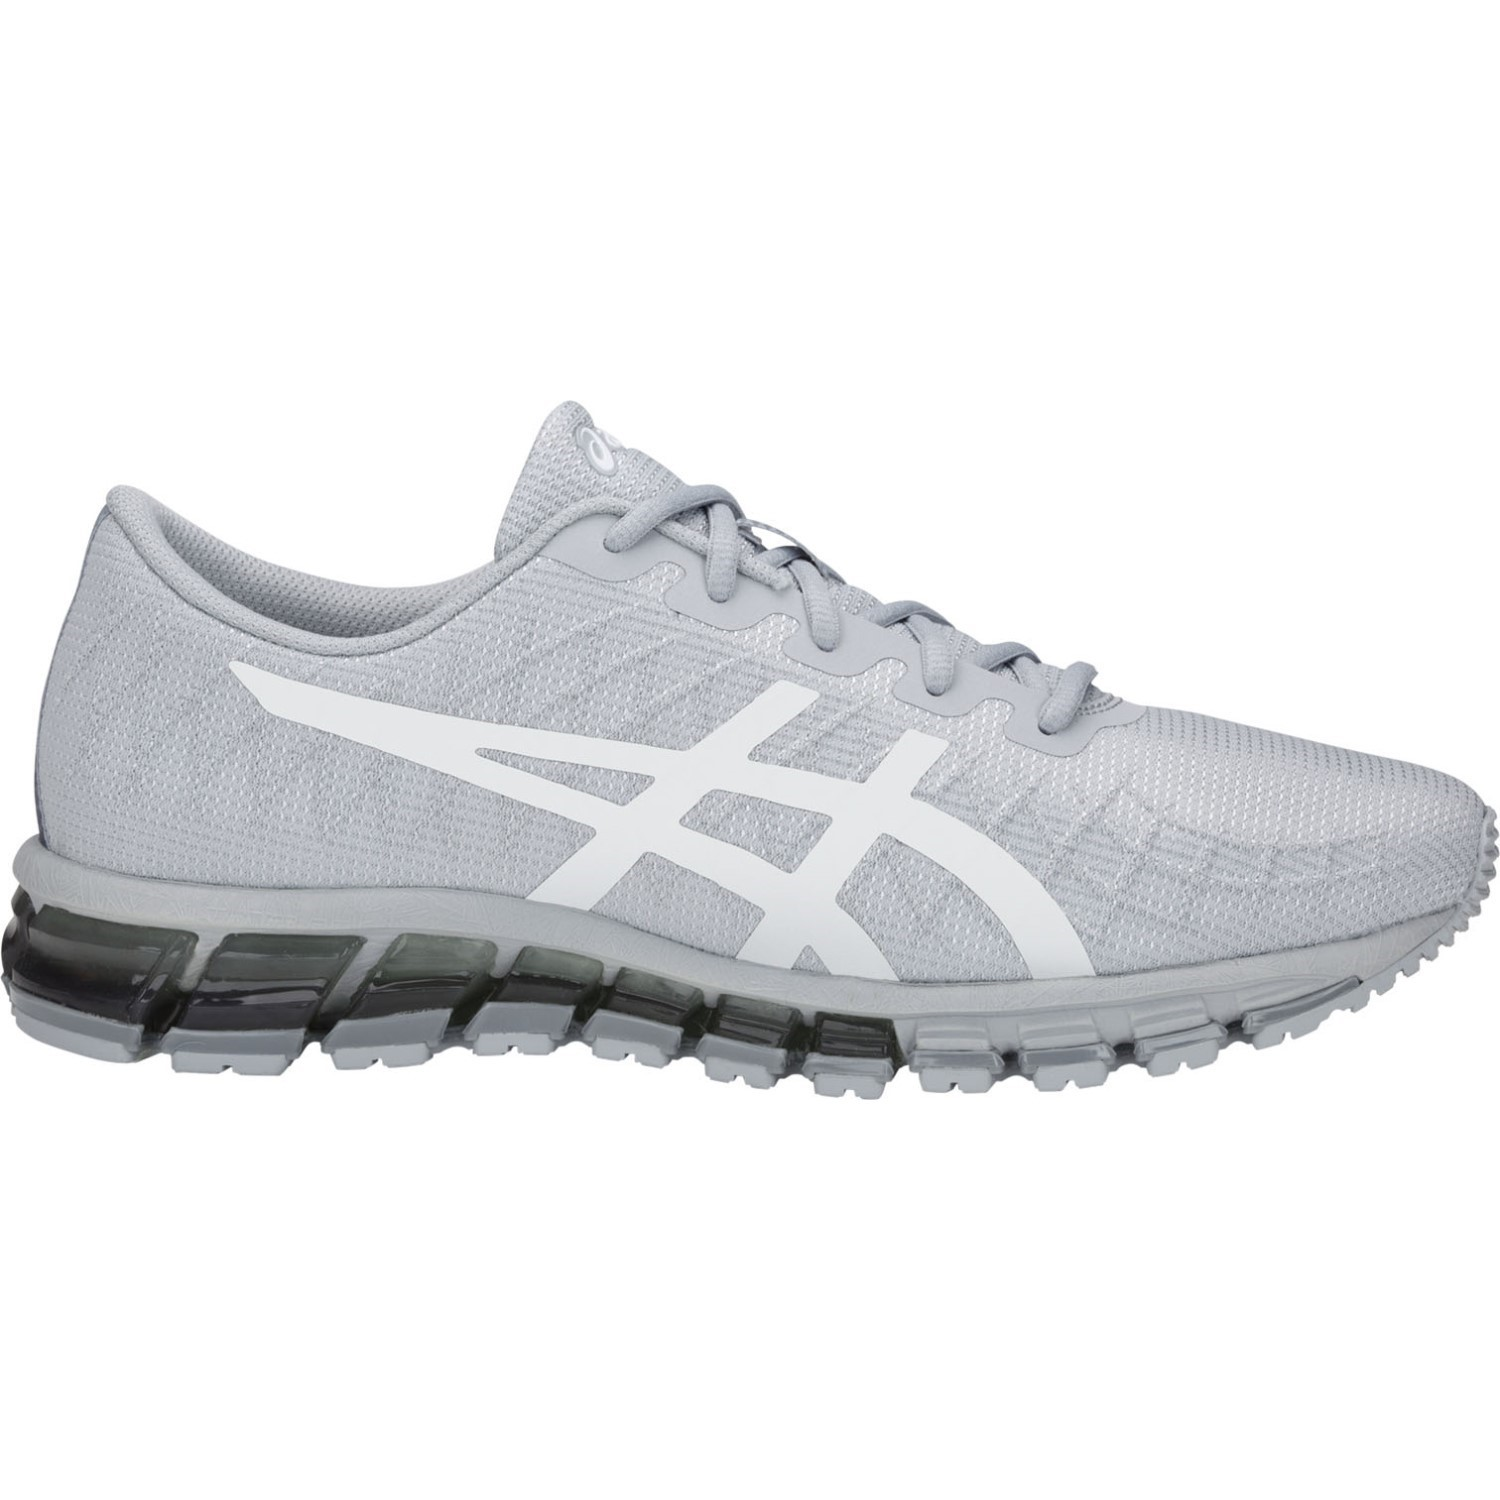 6288d40494fc Asics Gel Quantum 180 4 - Mens Training Shoes - Mid Grey White ...